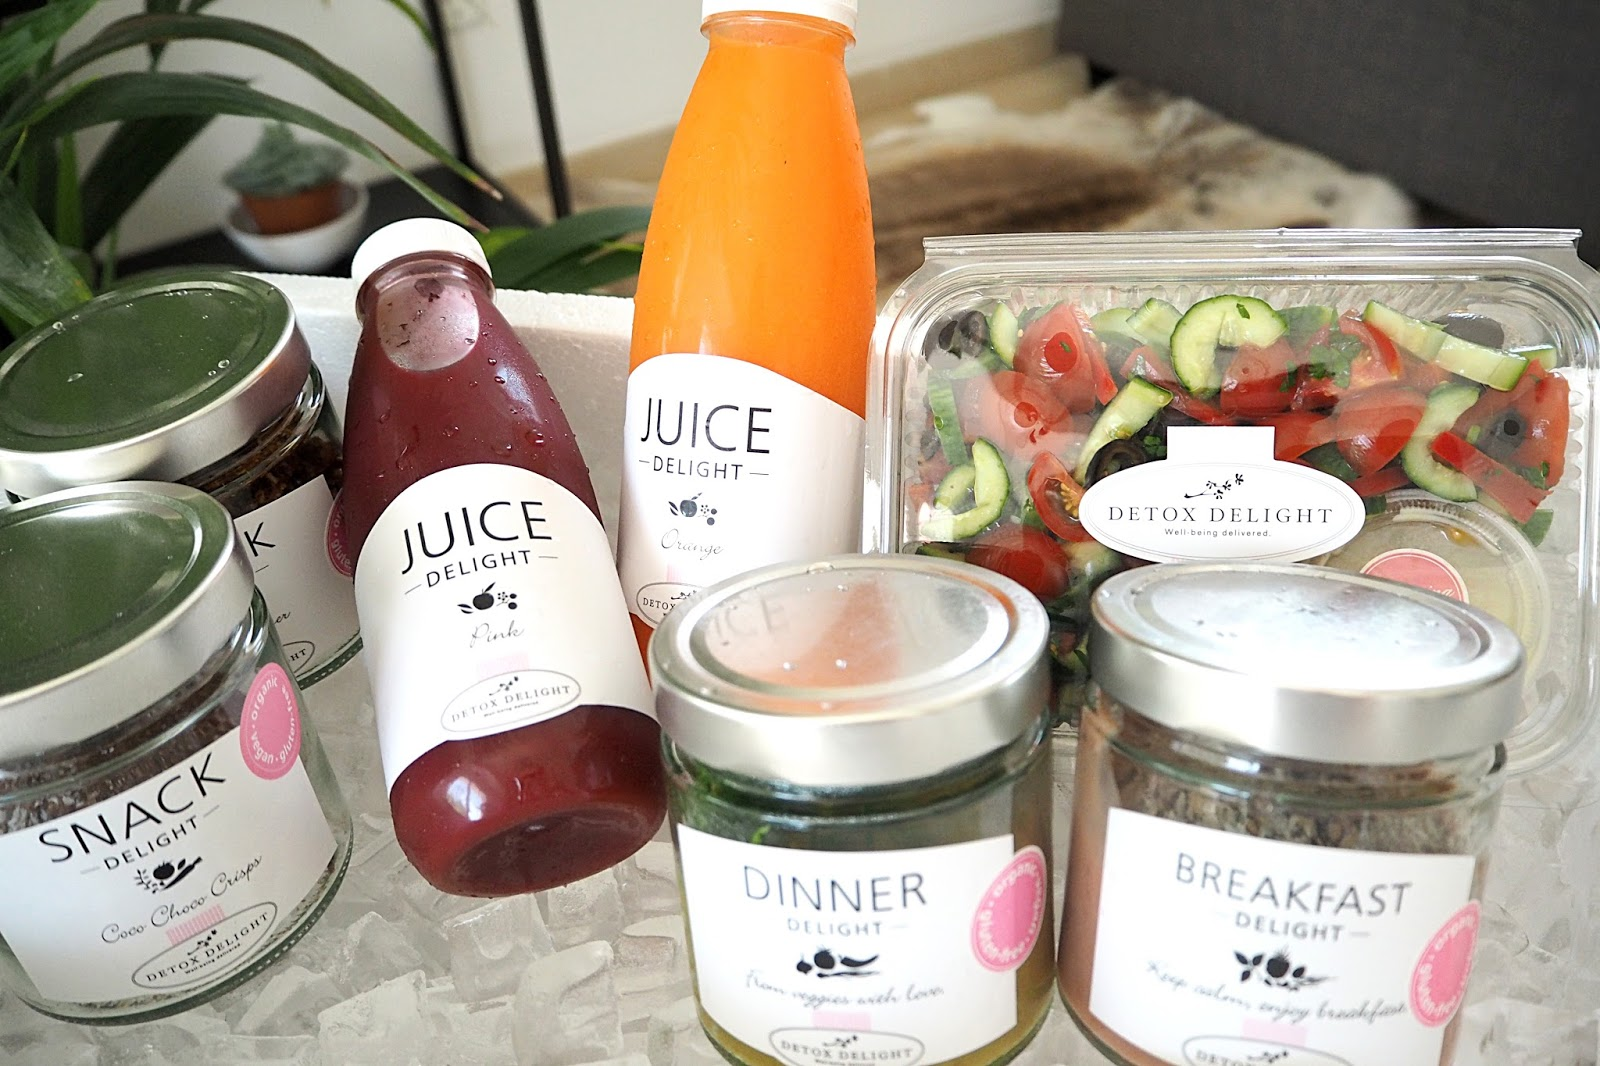 Detox Delight Dubai Review / Life in Excess Blog